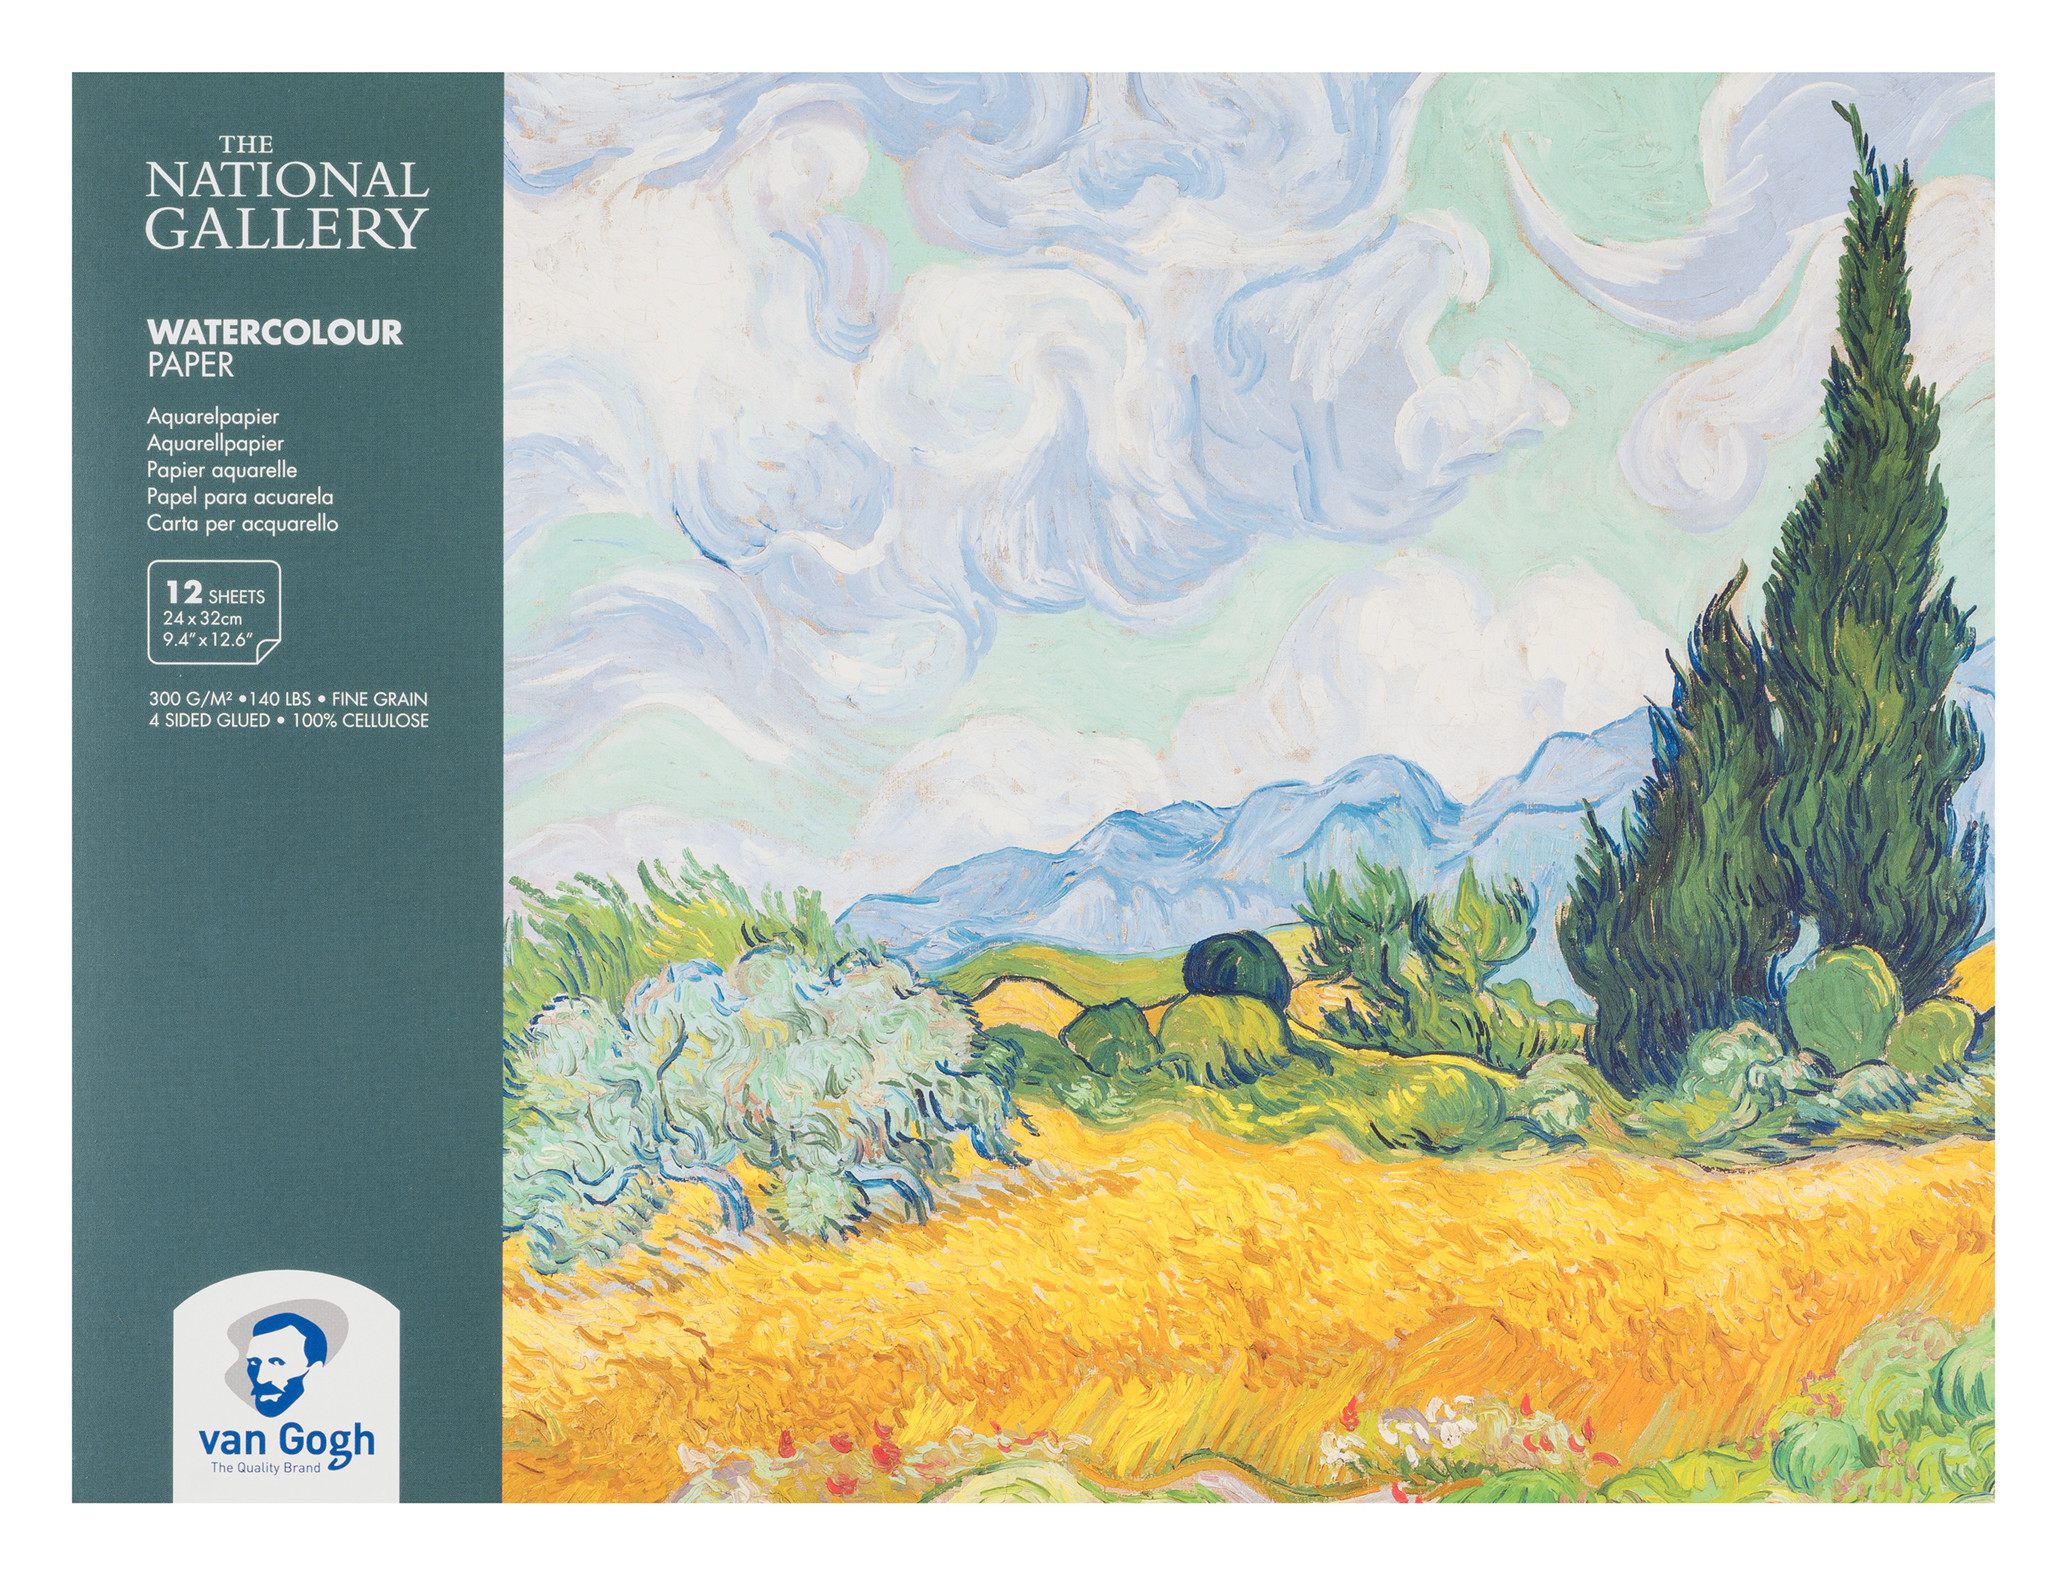 Van Gogh The National Gallery Water Colour Paper Block, 12 Sheets, 300g/140lb., size 24 x 32cm / 9.4 x 12.6